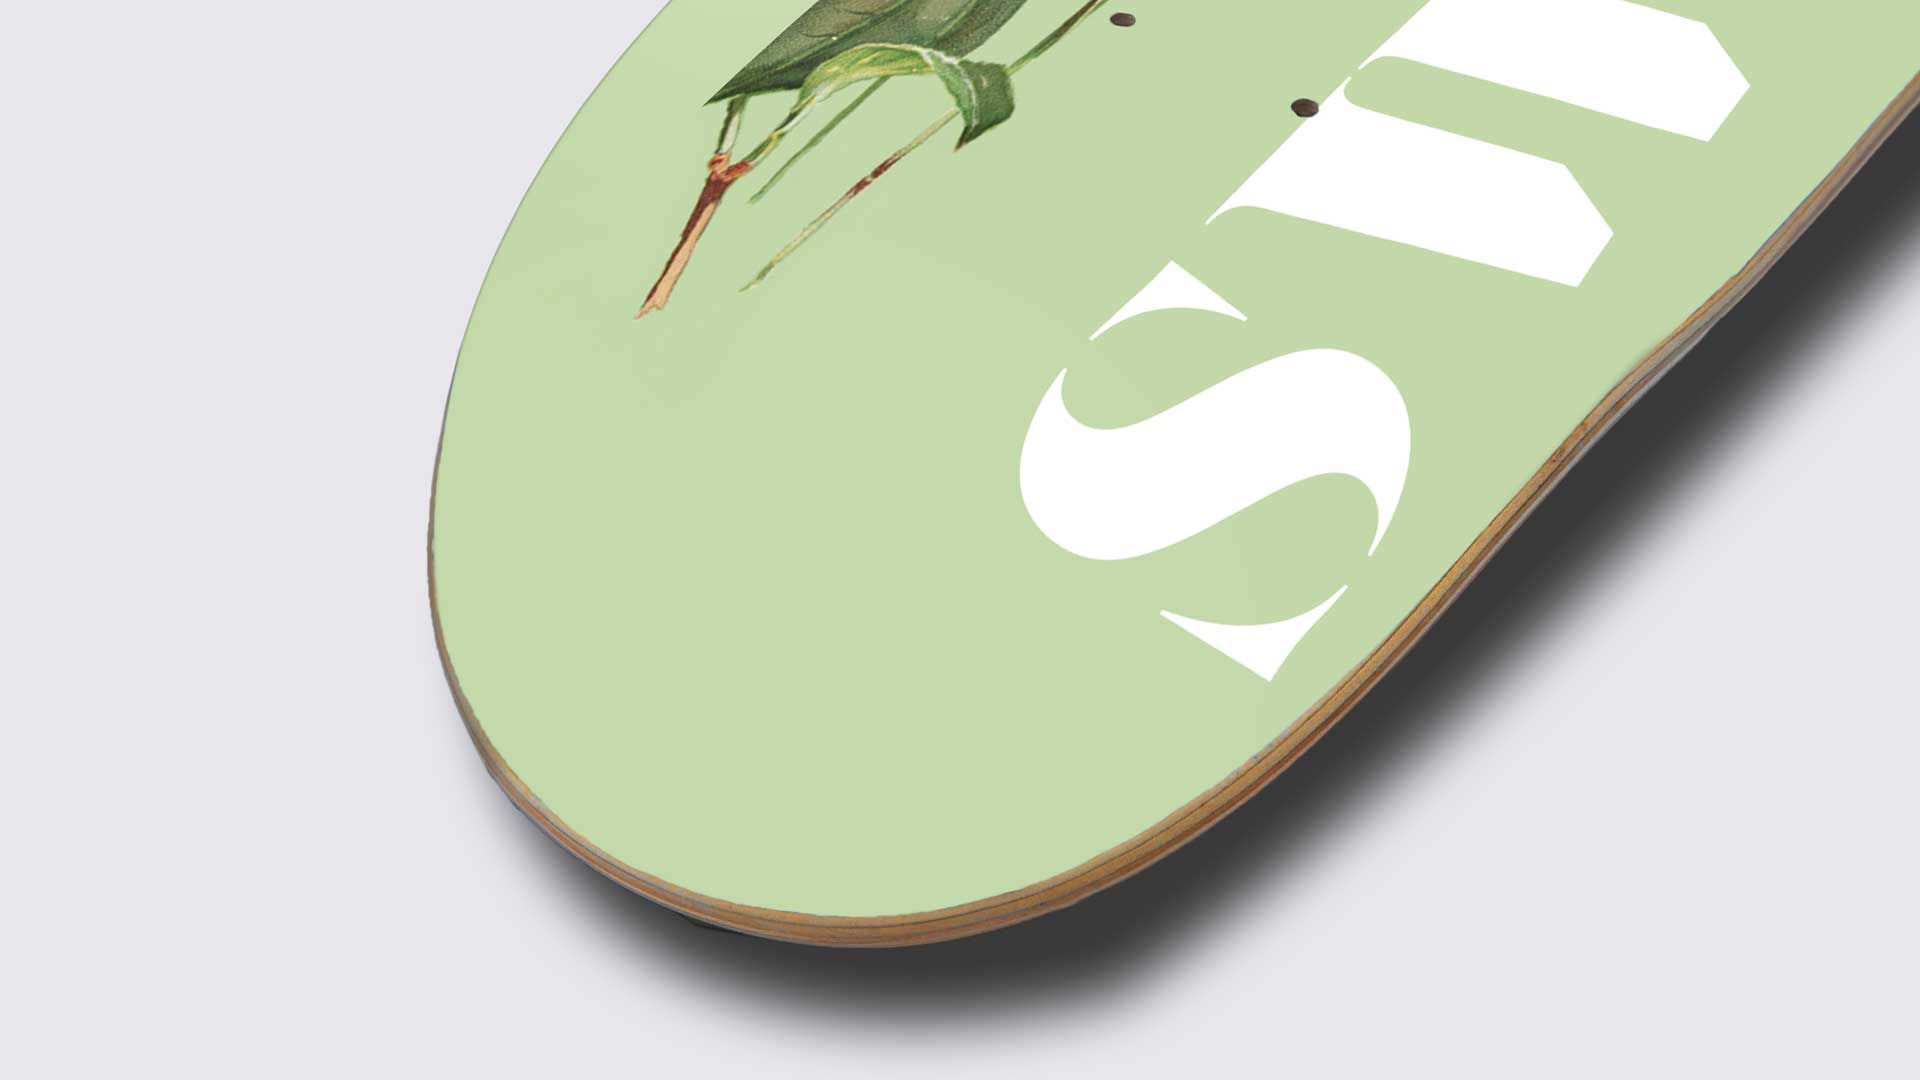 5_2_deck_skateboards_graphicdesign